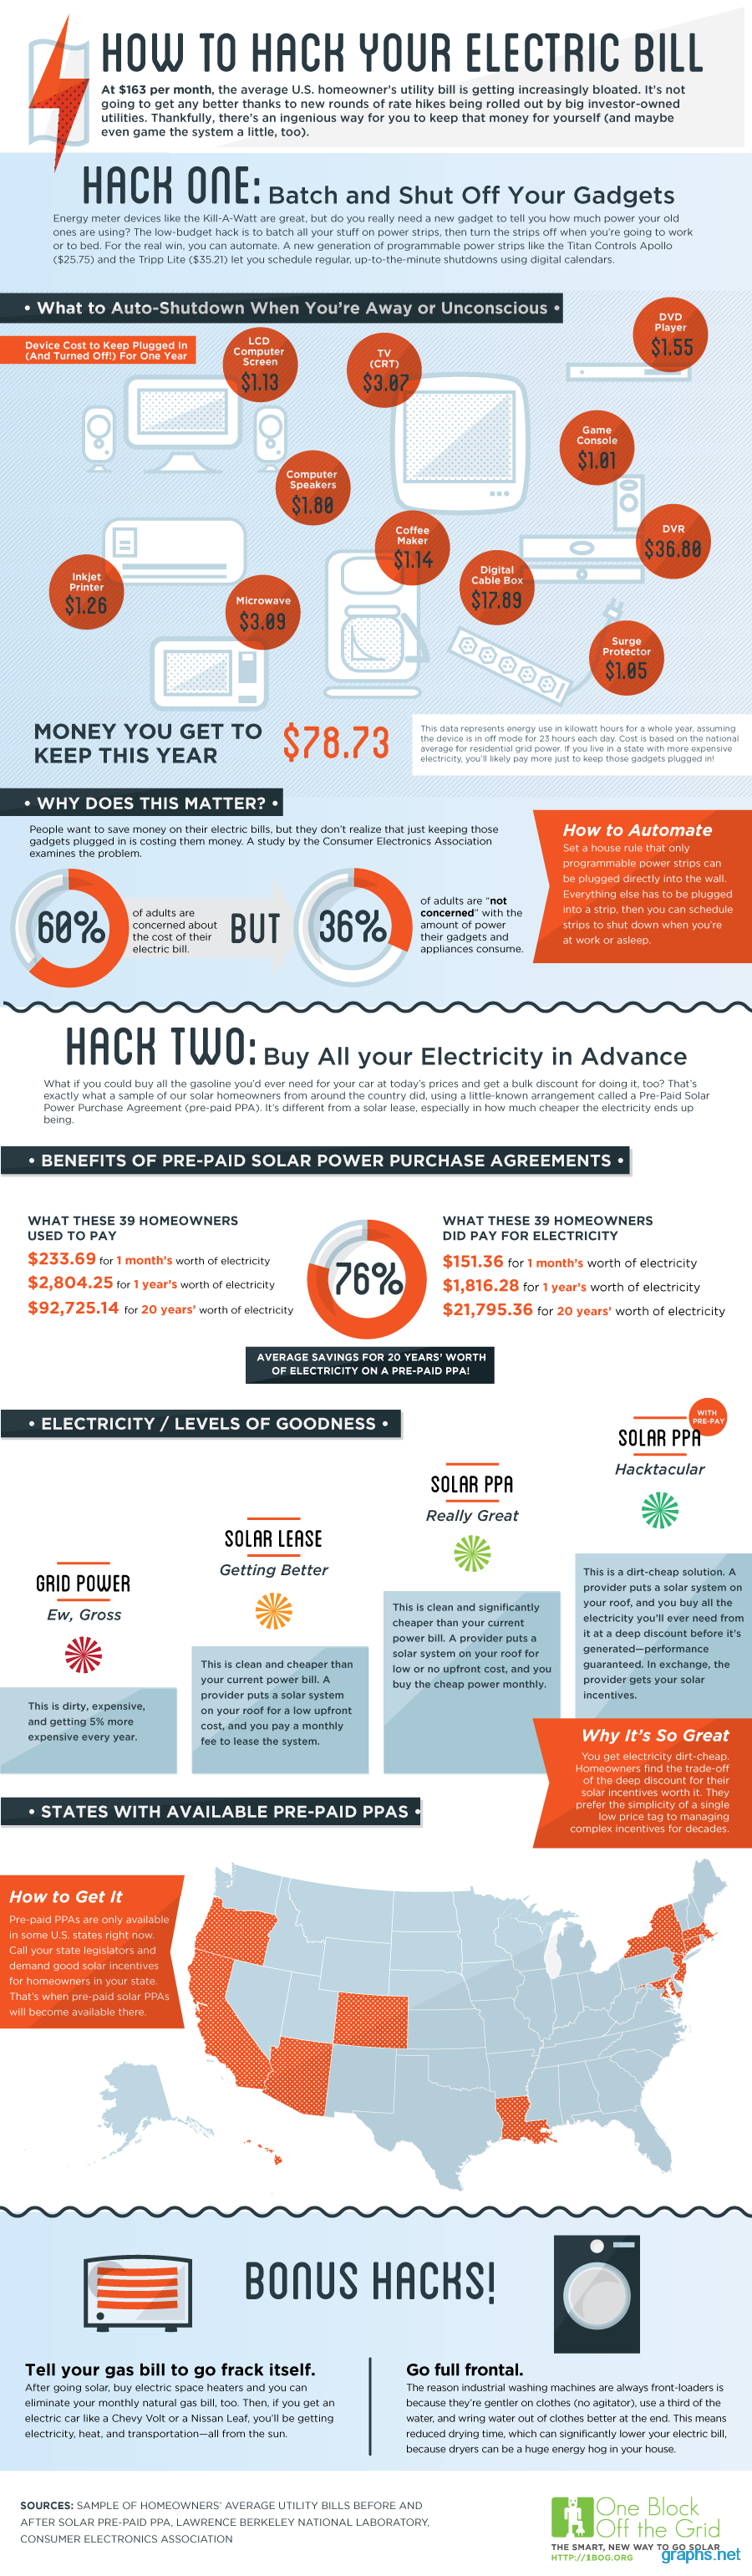 hack your electric bill